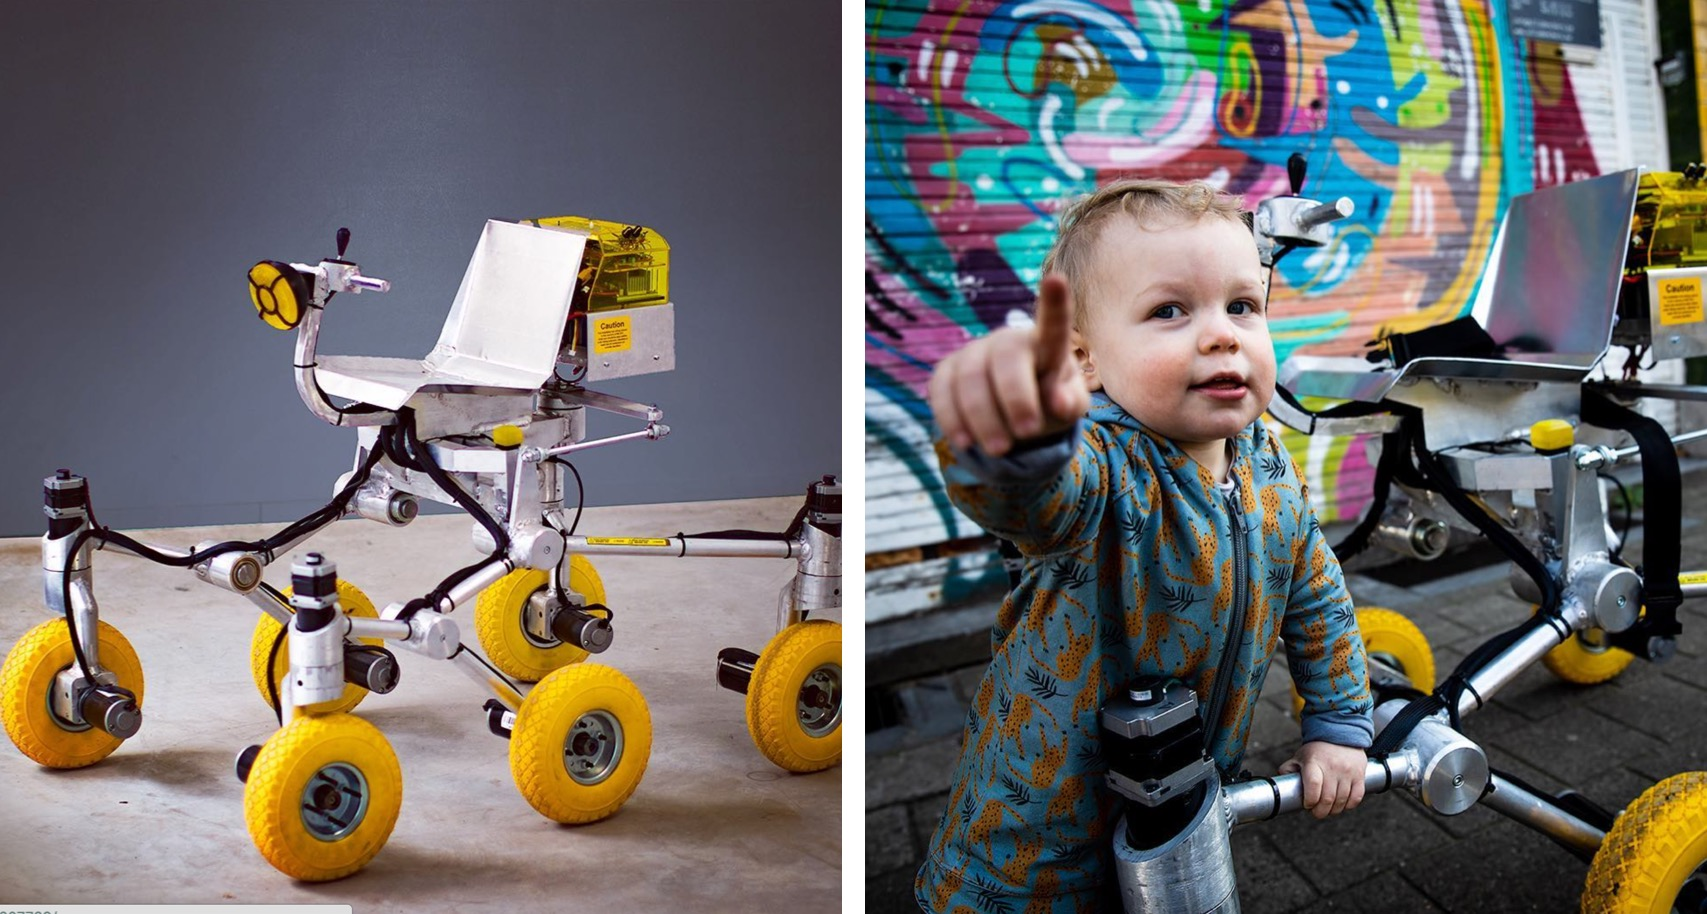 Houston, This Dad Just Built A Drivable Mars Rover For His Son. Over. [WATCH]